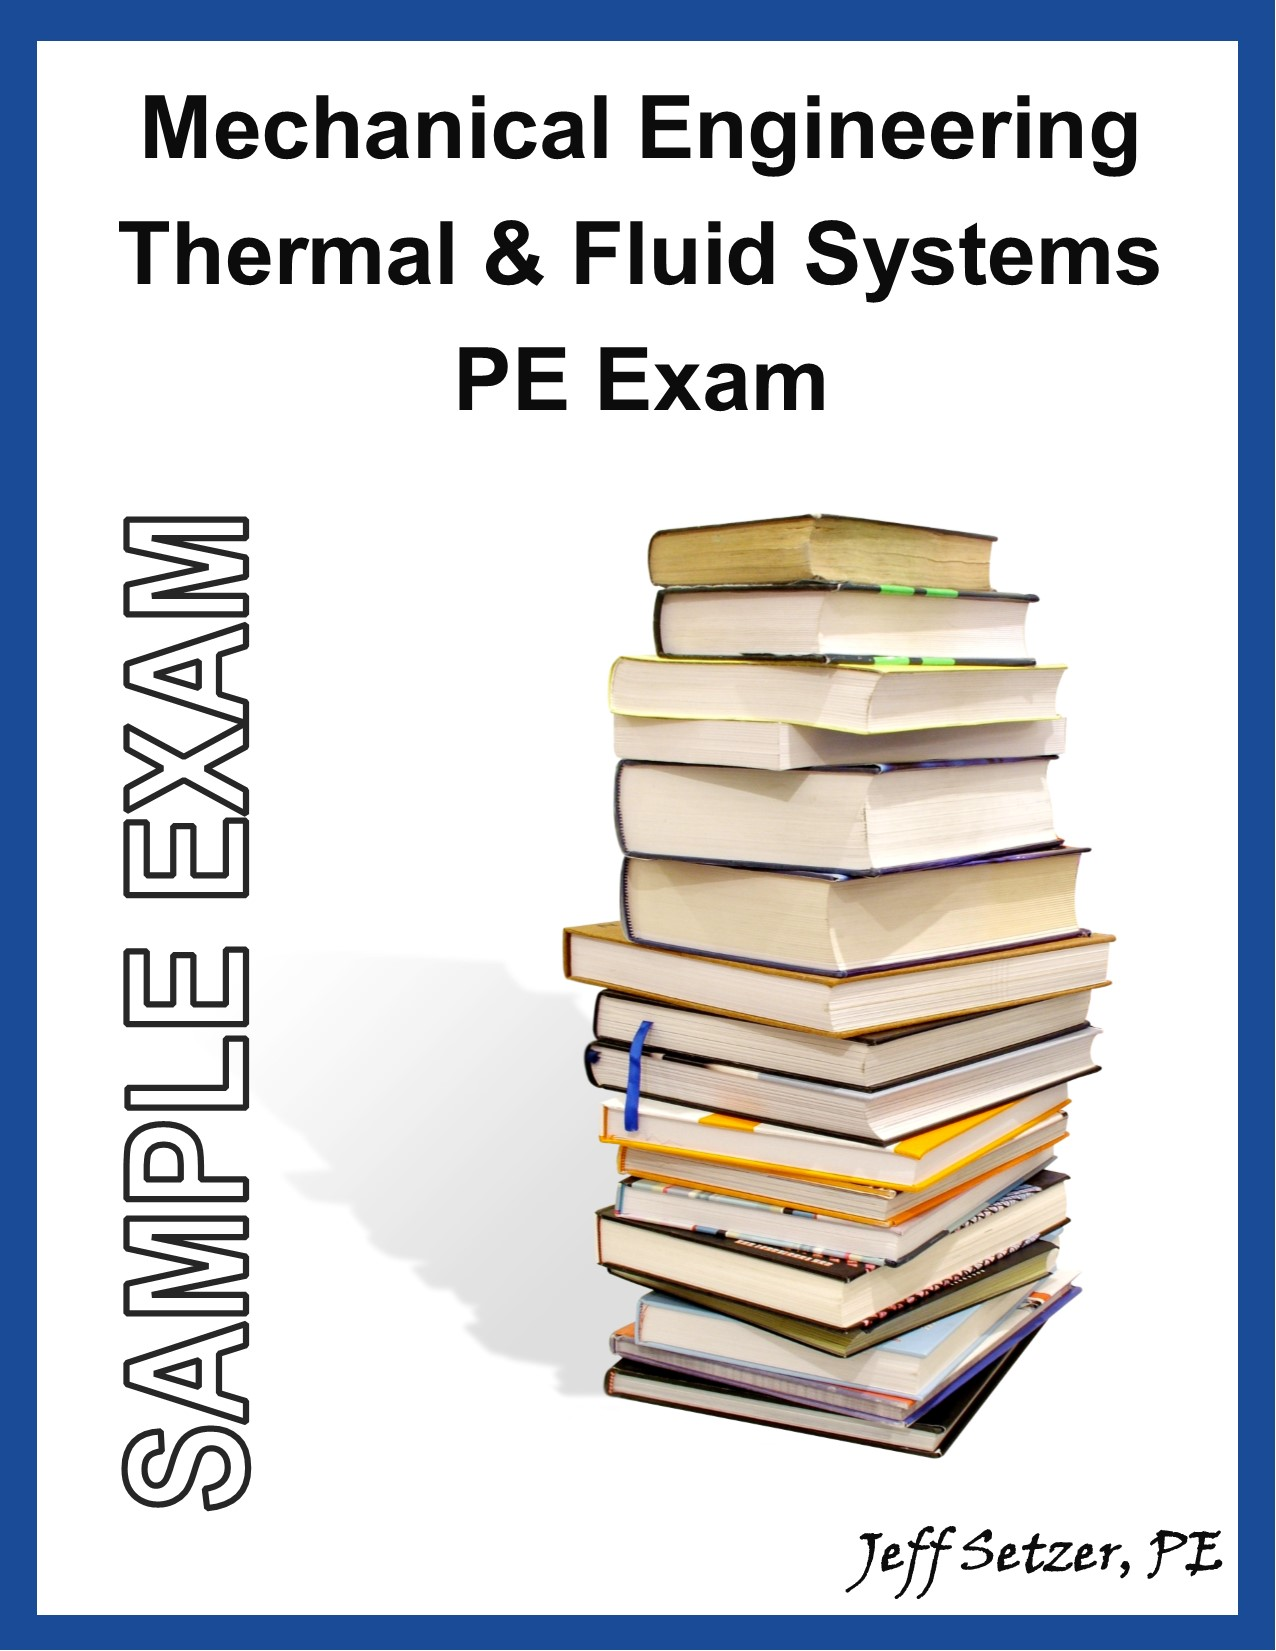 Thermal & Fluid Systems PE Sample Exam | PE Exam Sample Questions